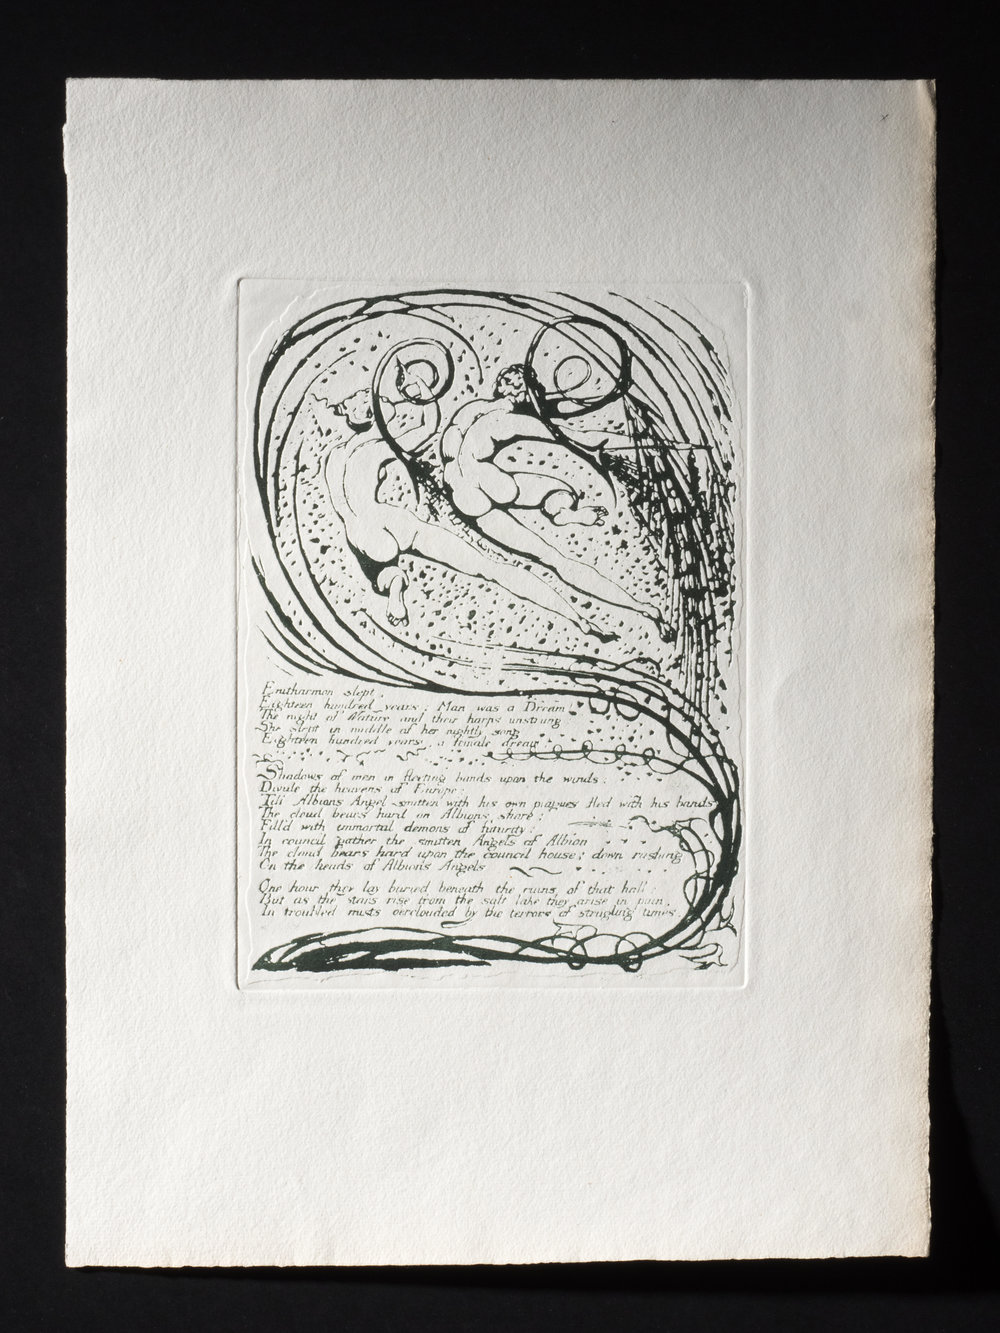 Copy of Plate 10, Europe, 'Enitharmon sleot' full page